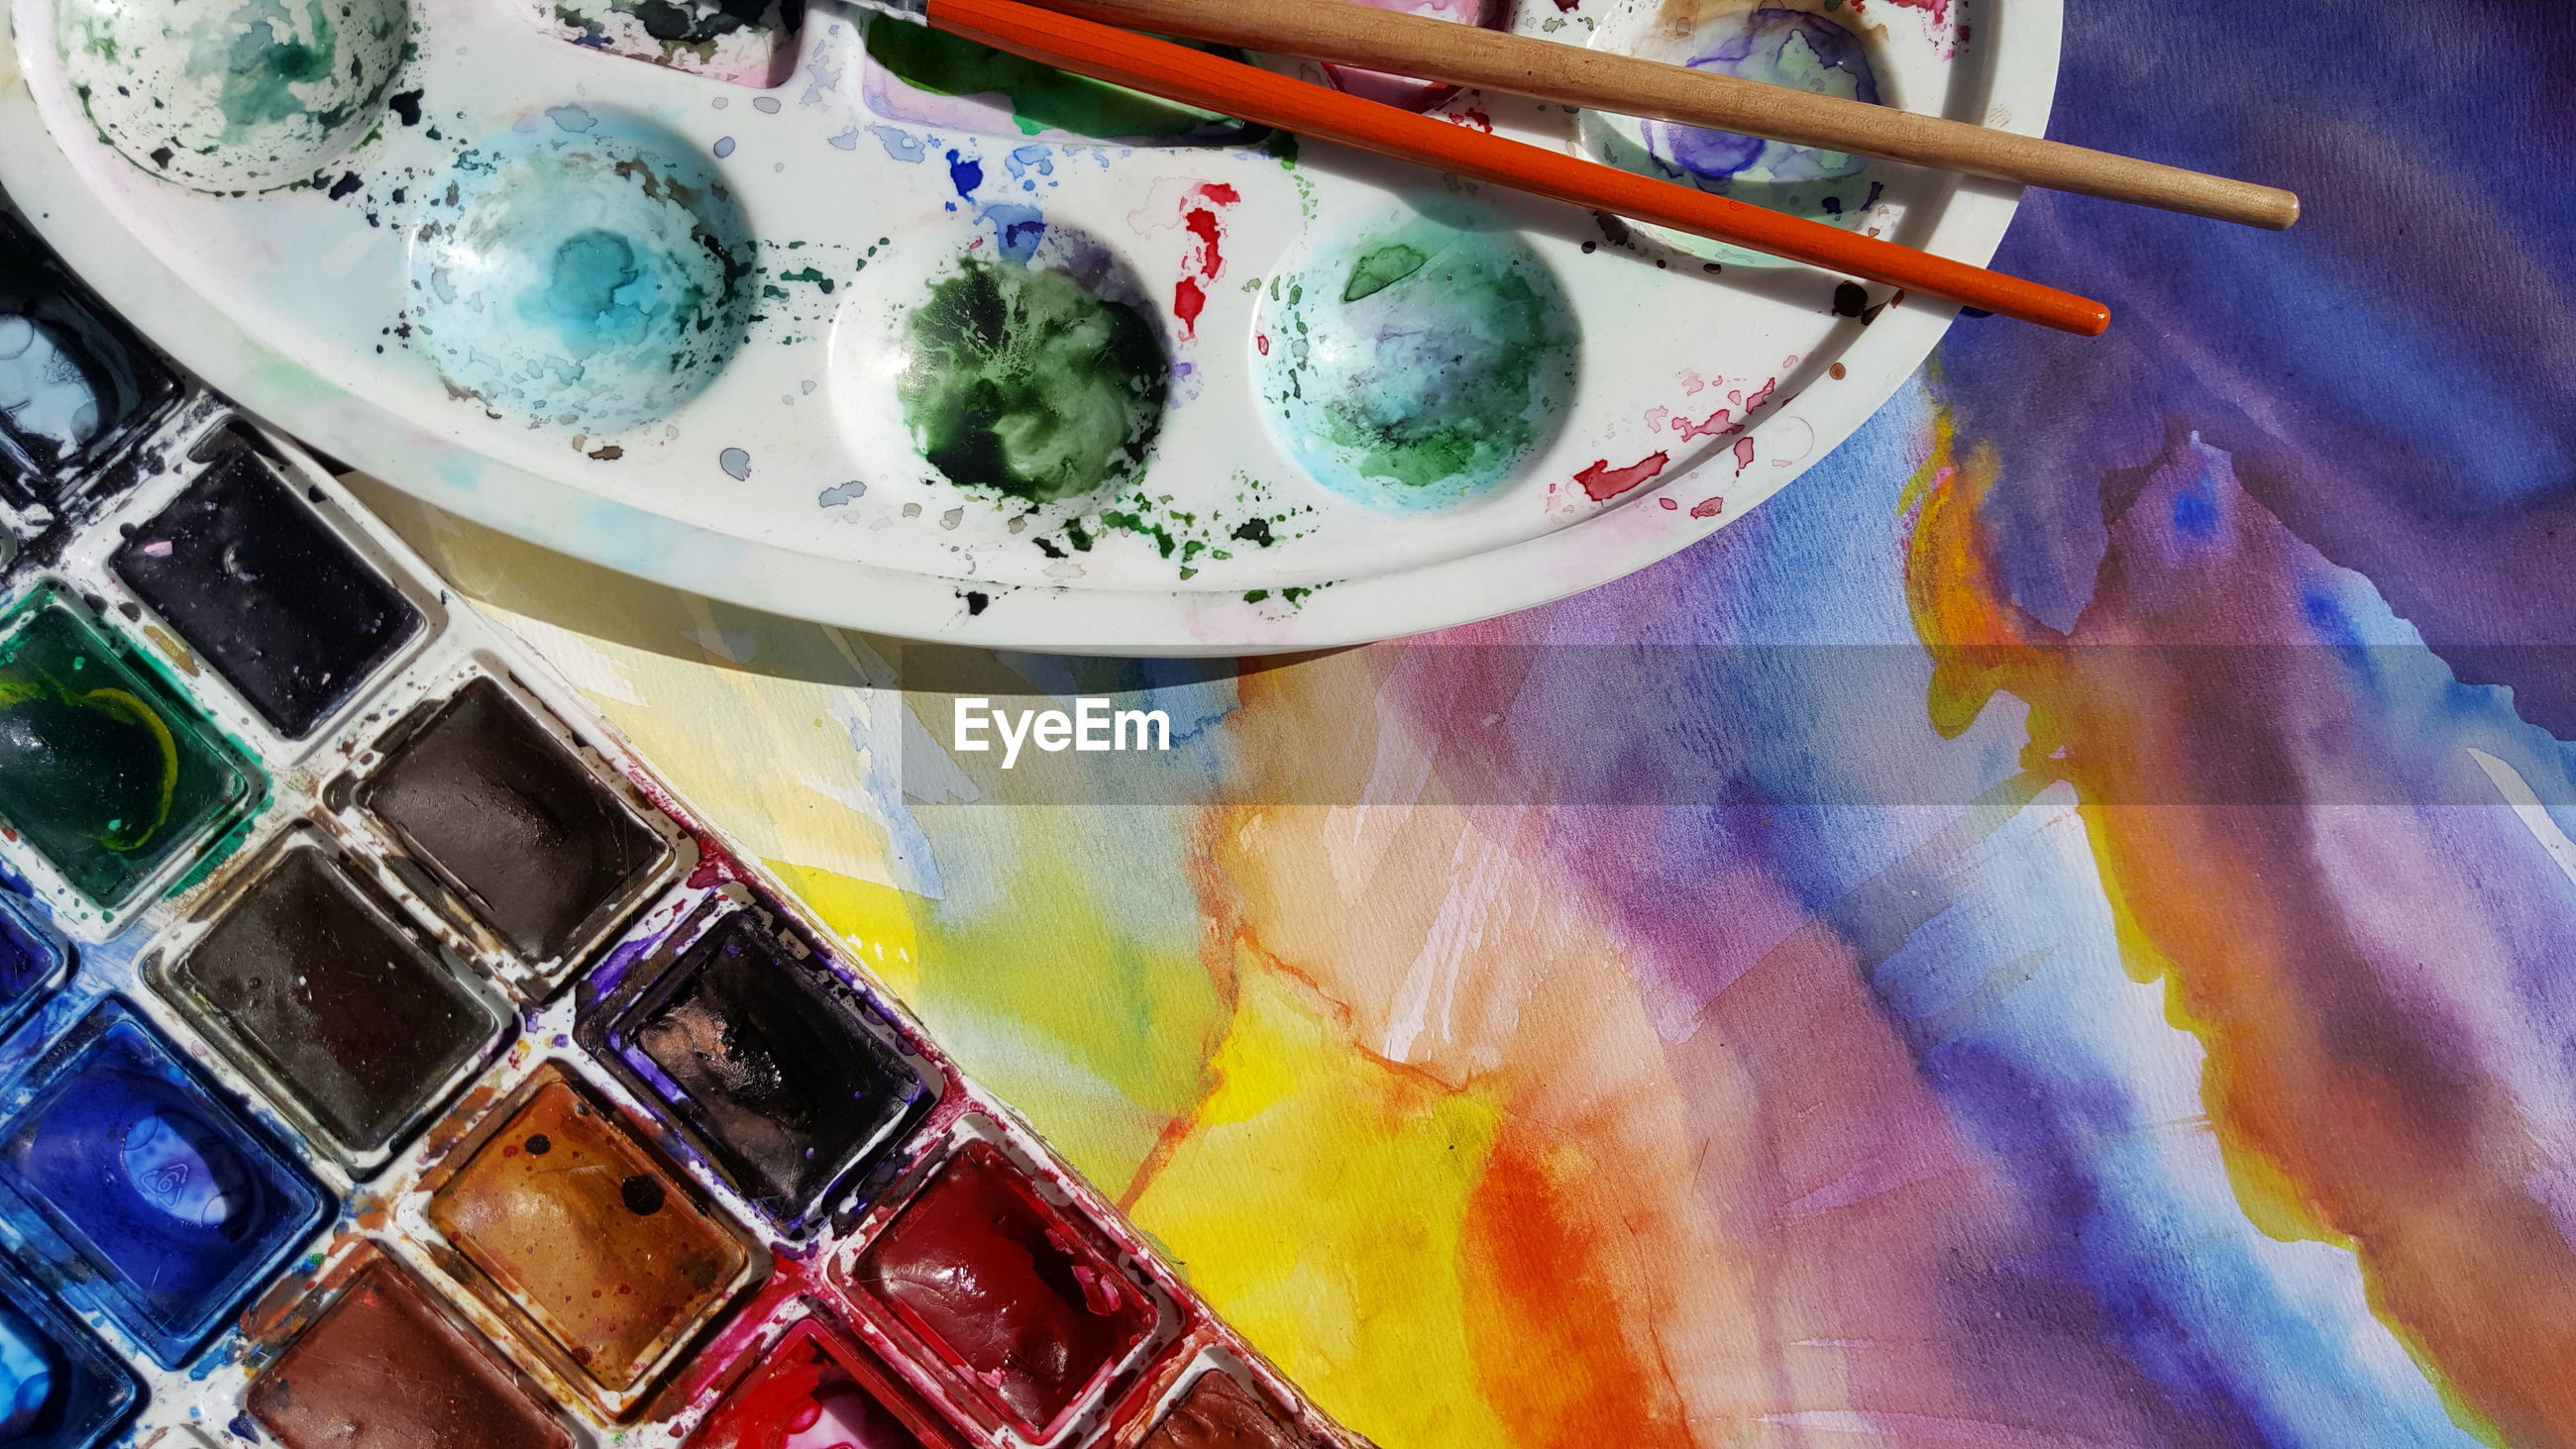 High angle view of palette on colorful painting